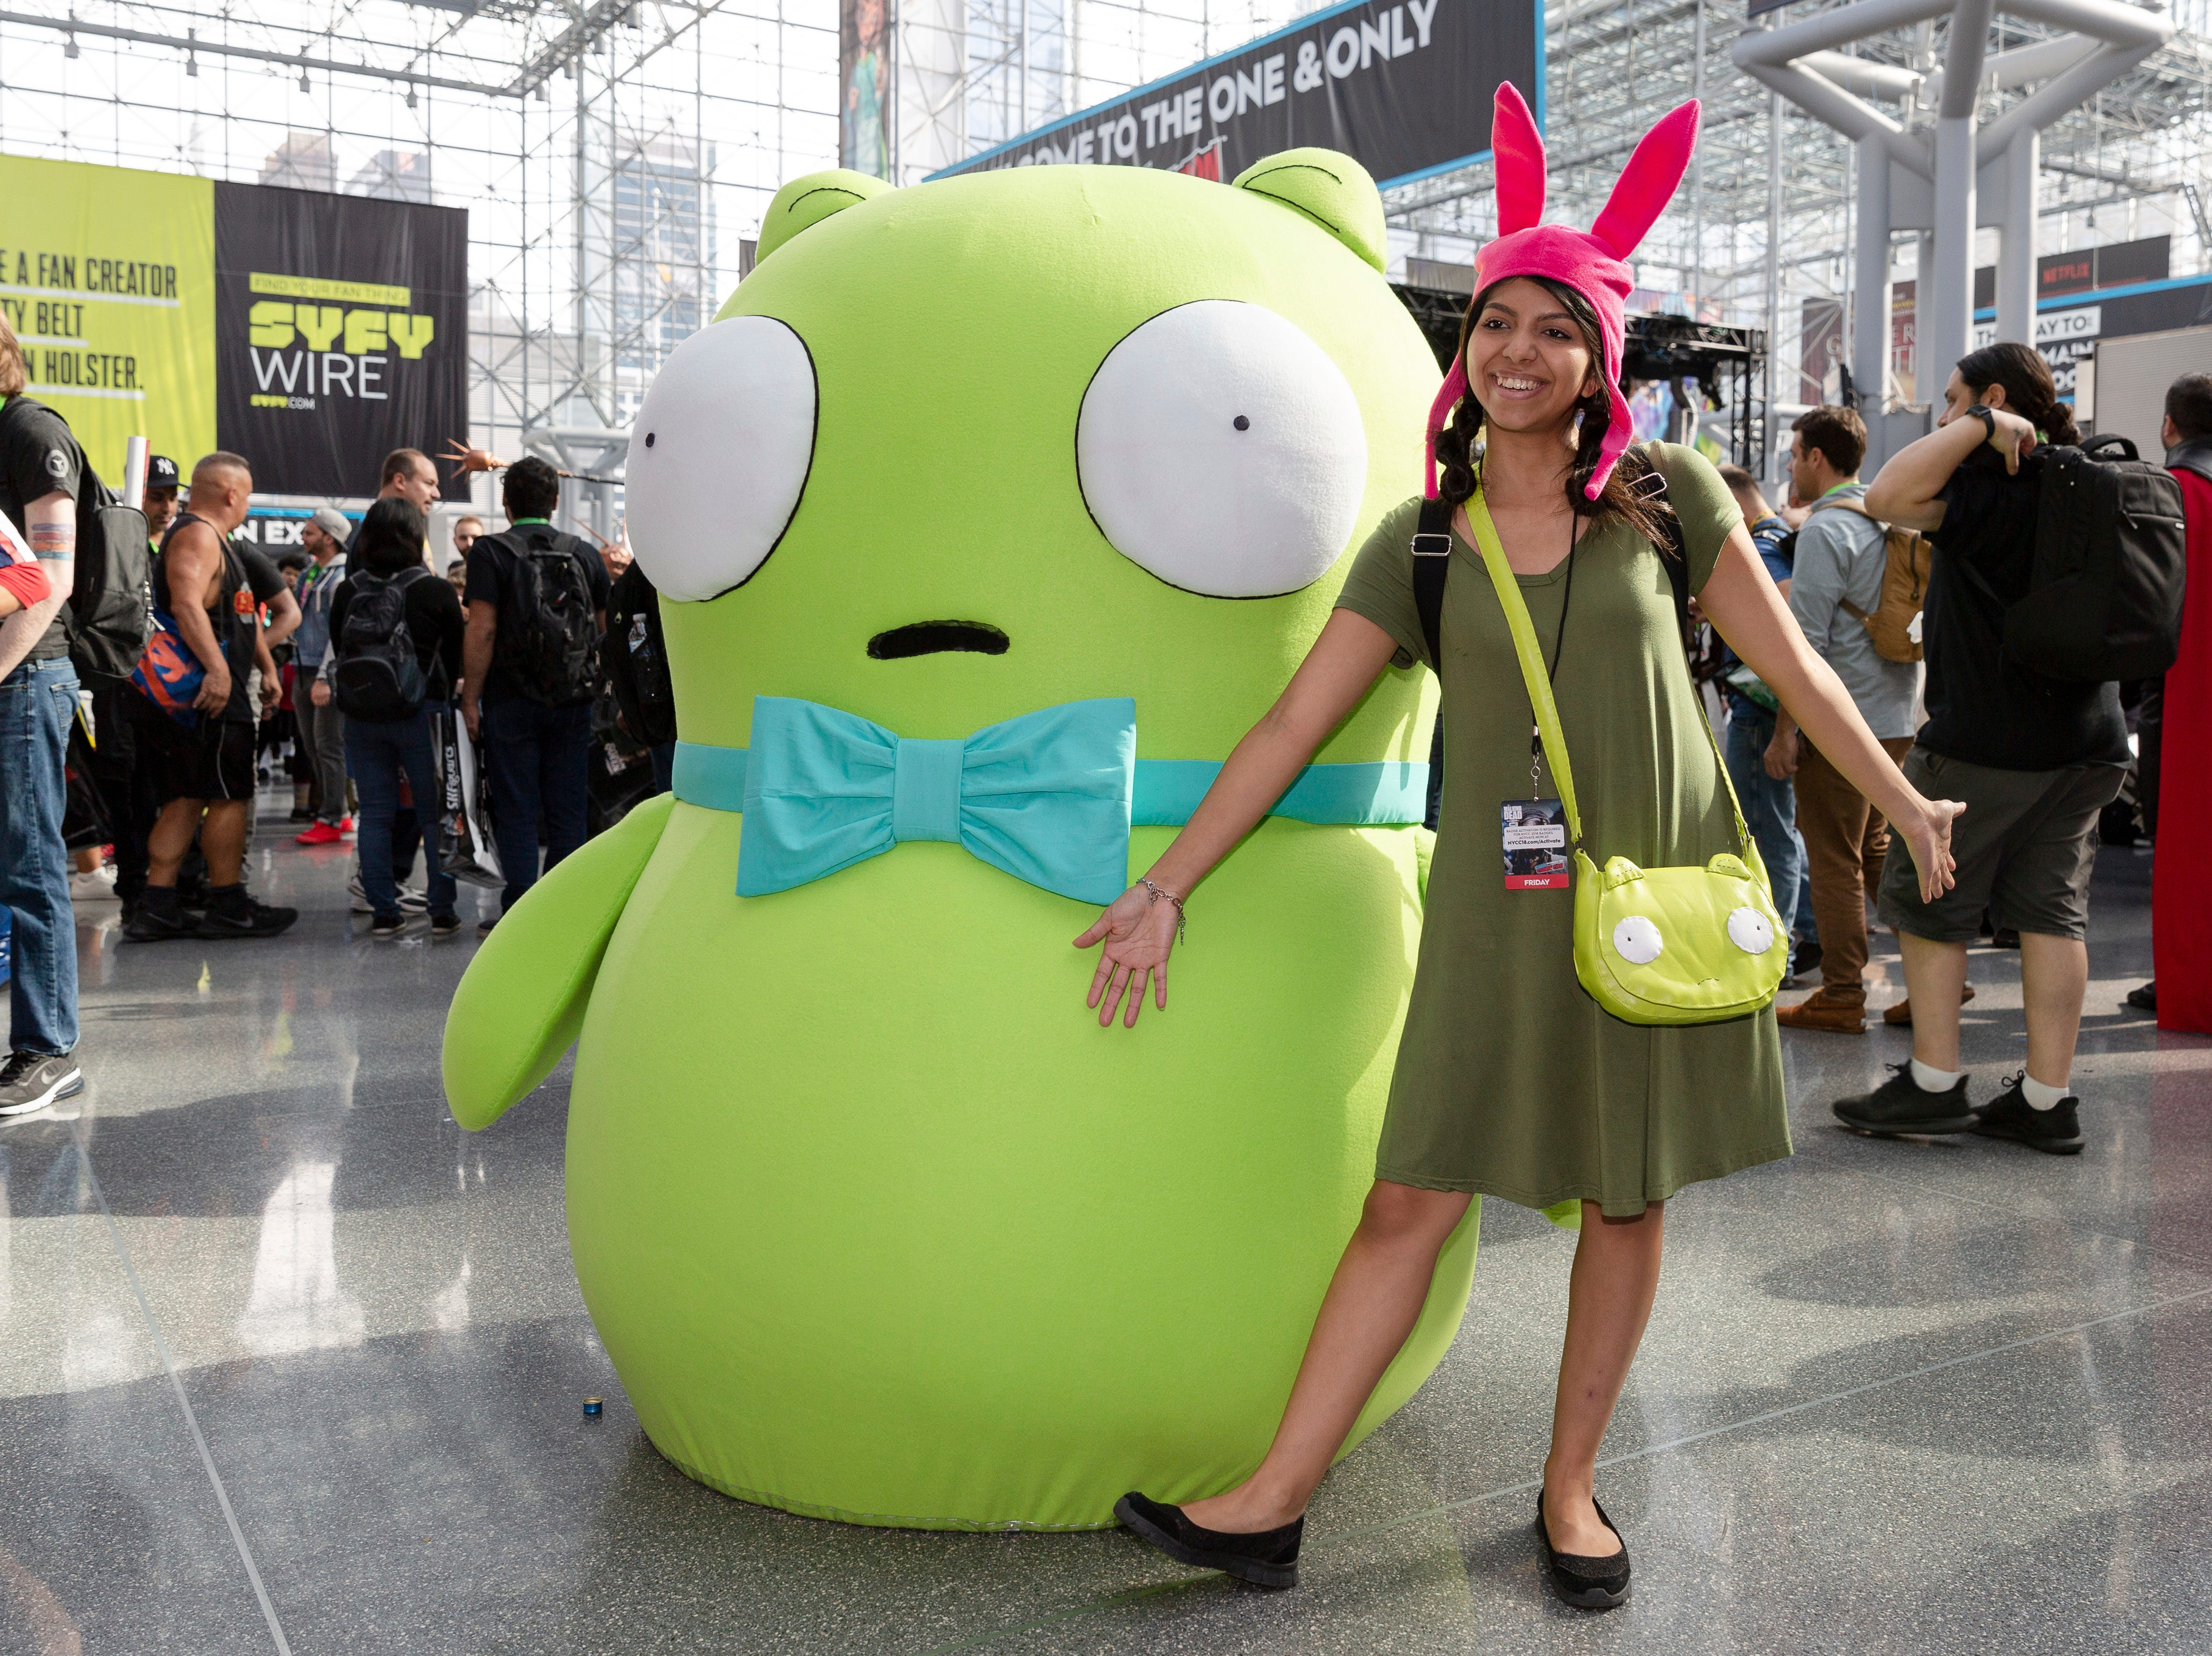 Attendees dressed in costume pose for a photo on the second day of New York Comic Con, Friday, Oct. 5, 2018. (AP Photo/Steve Luciano)